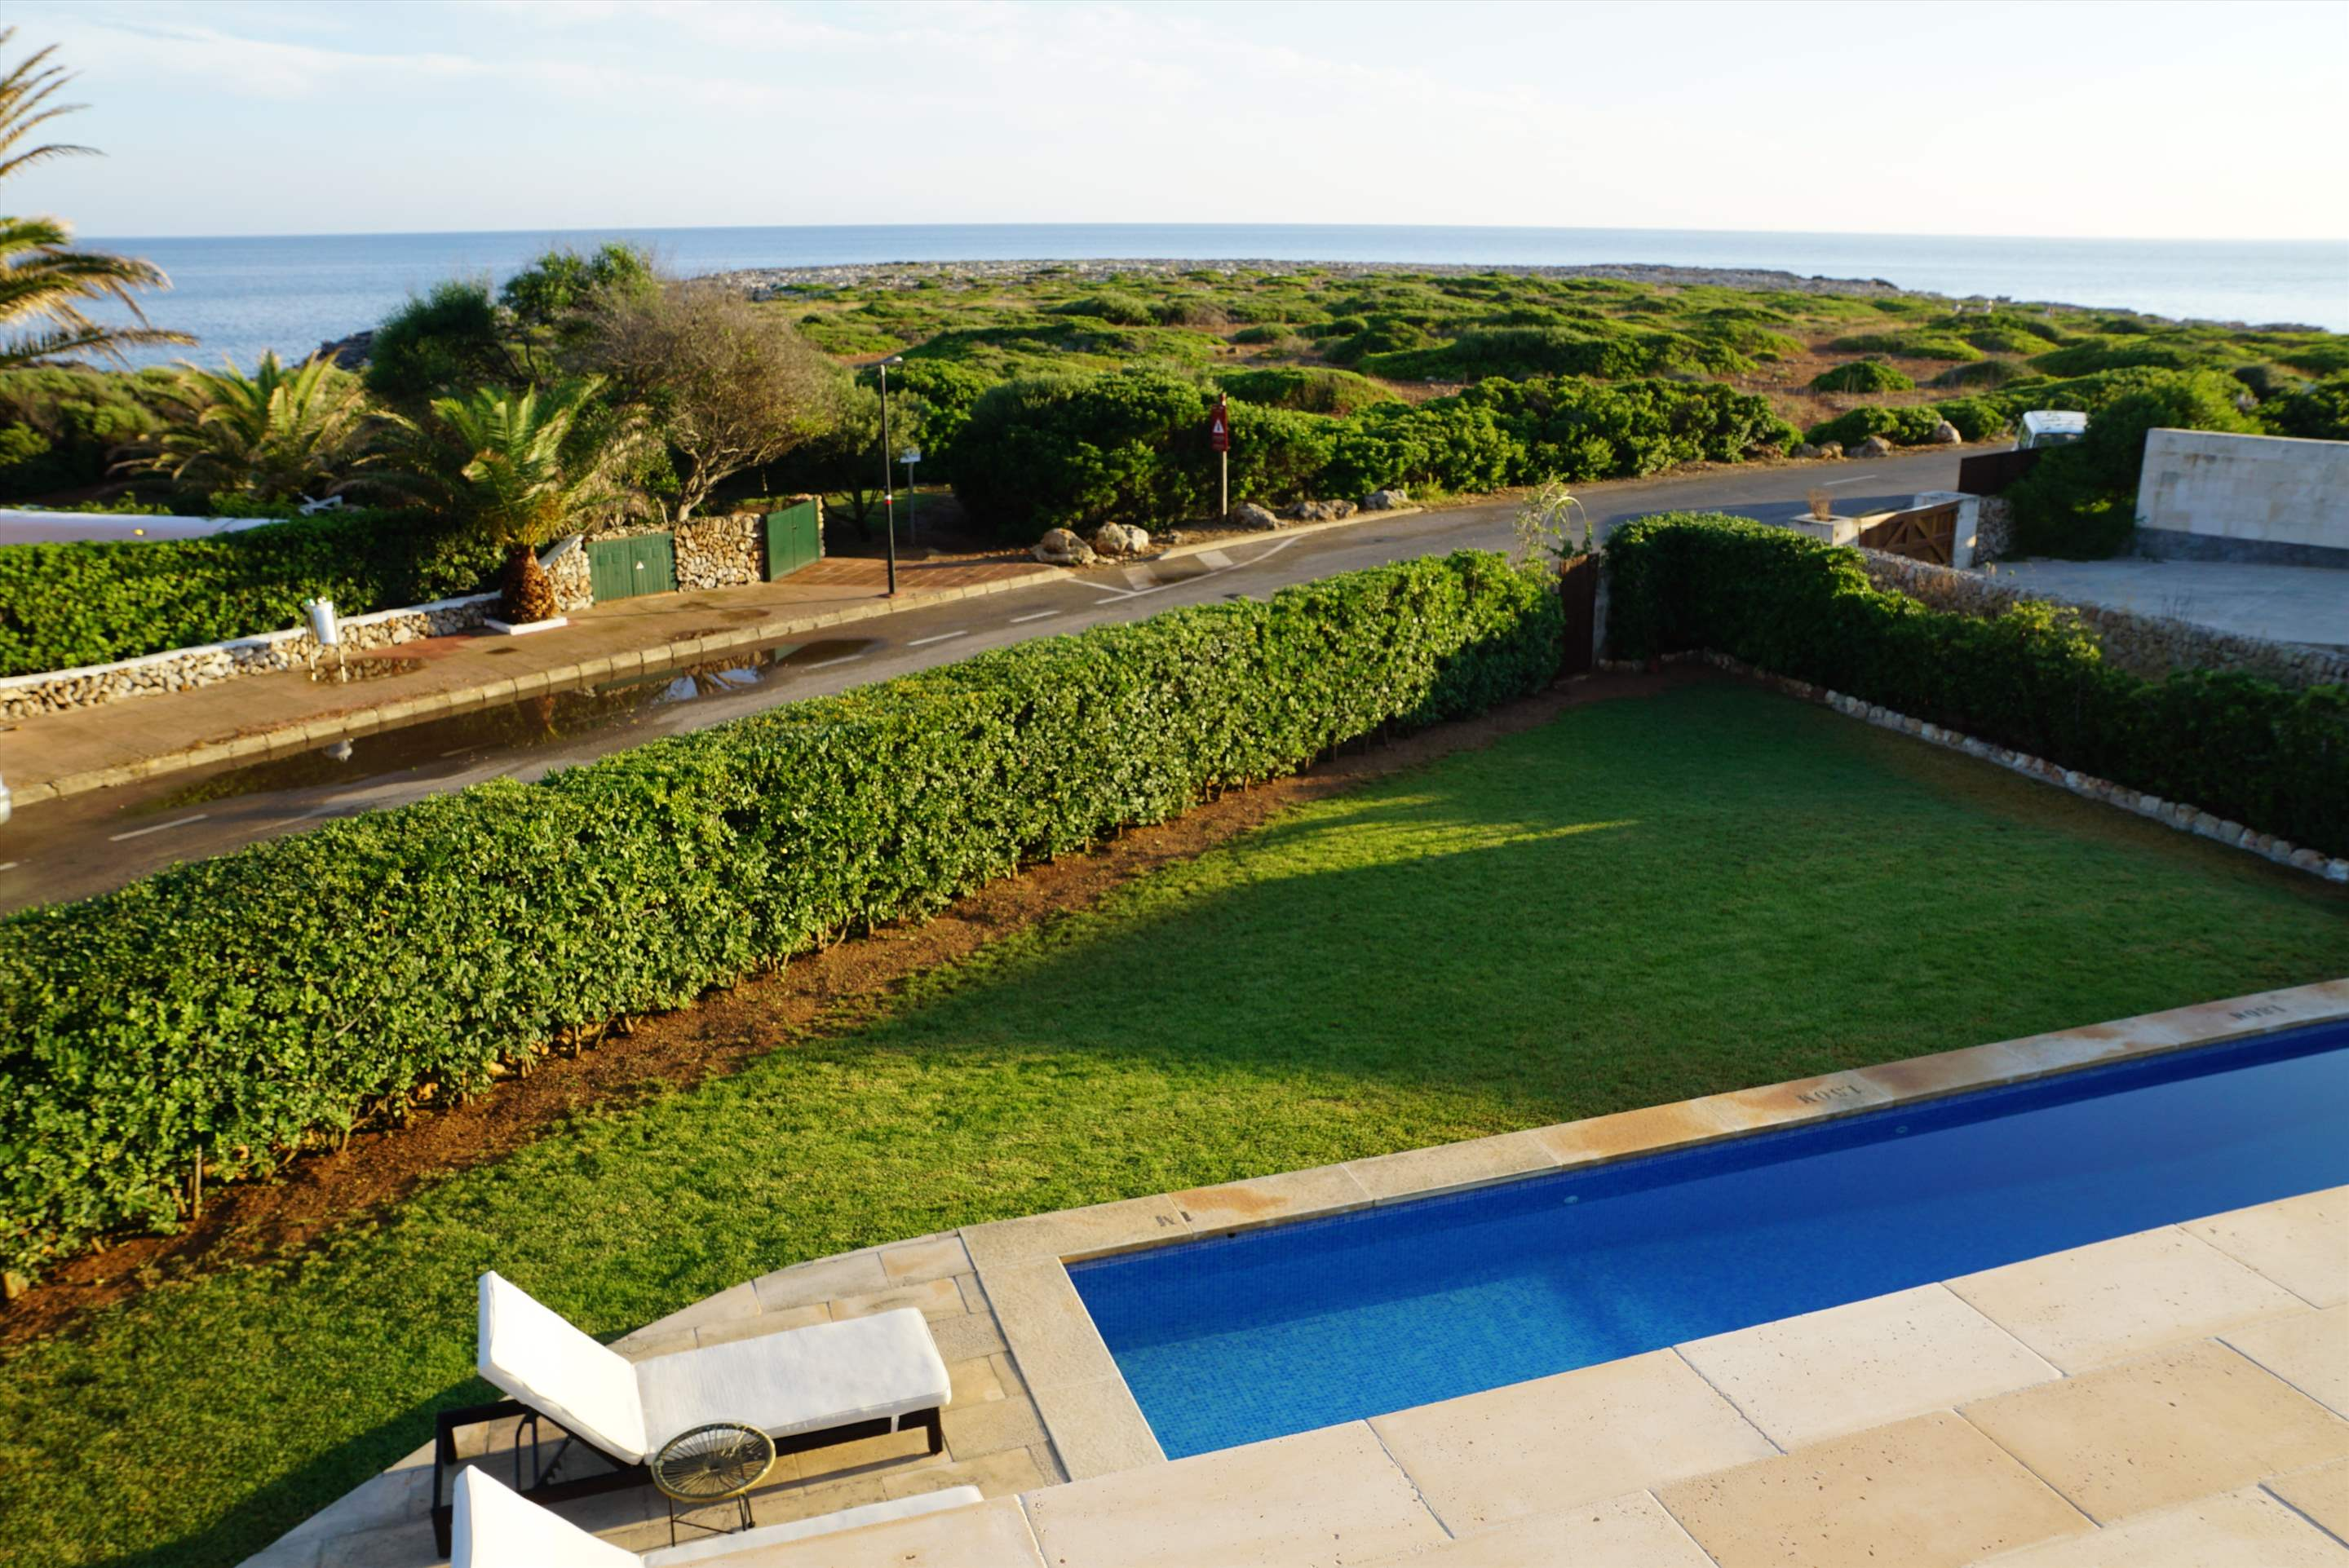 Villa Zapa, 3 bedroom villa in Mahon, San Luis & South East, Menorca Photo #21